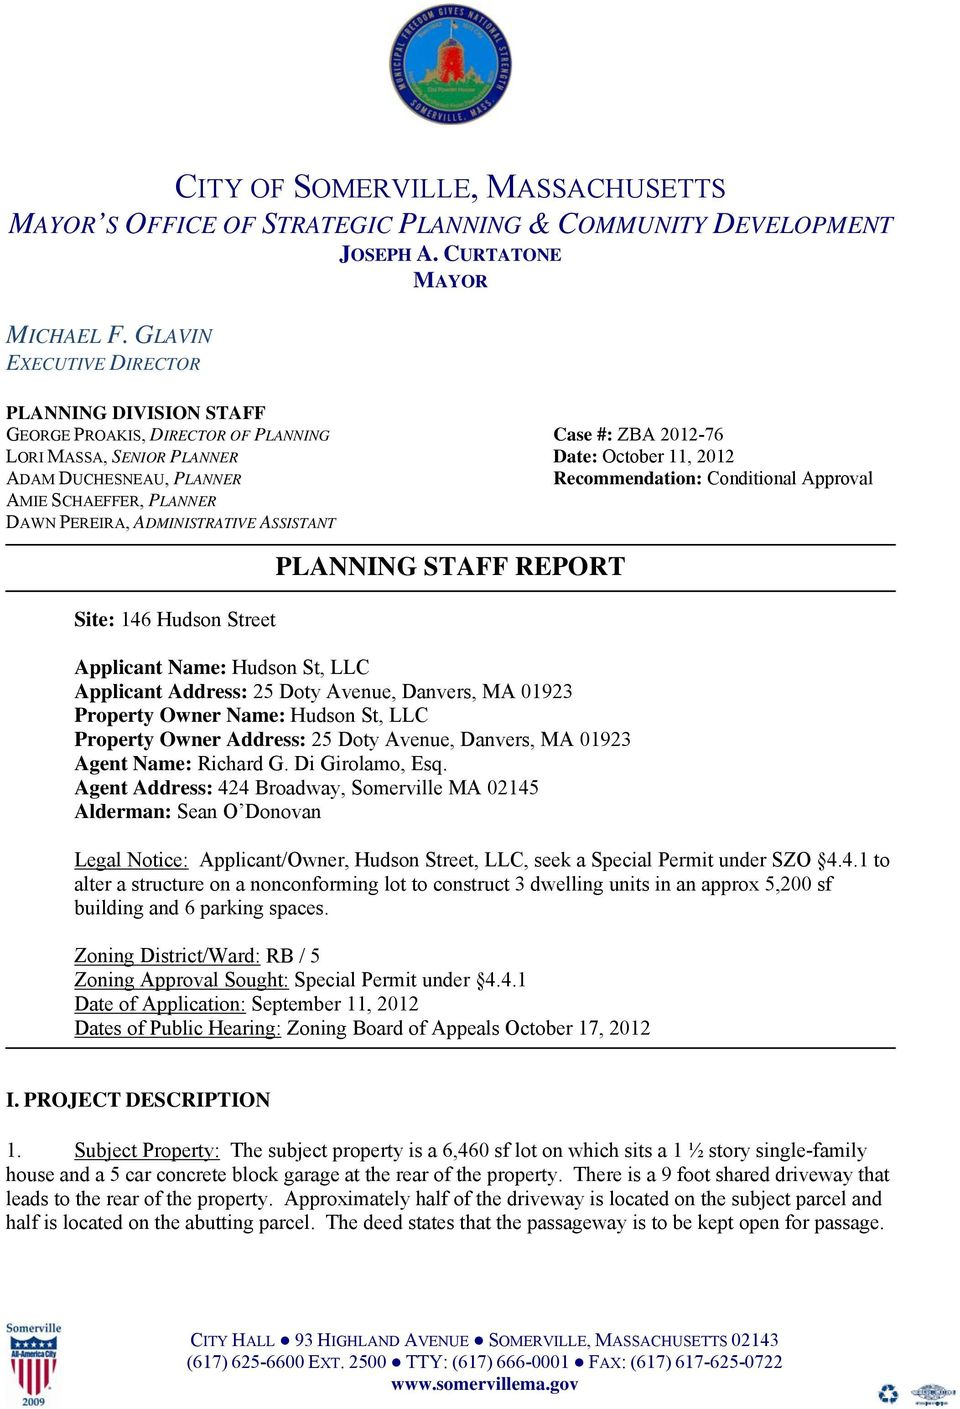 SCHAEFFER, PLANNER DAWN PEREIRA, ADMINISTRATIVE ASSISTANT reet PLANNING STAFF REPORT Applicant Name: Hudson St, LLC Applicant Address: 25 Doty Avenue, Danvers, MA 01923 Property Owner Name: Hudson